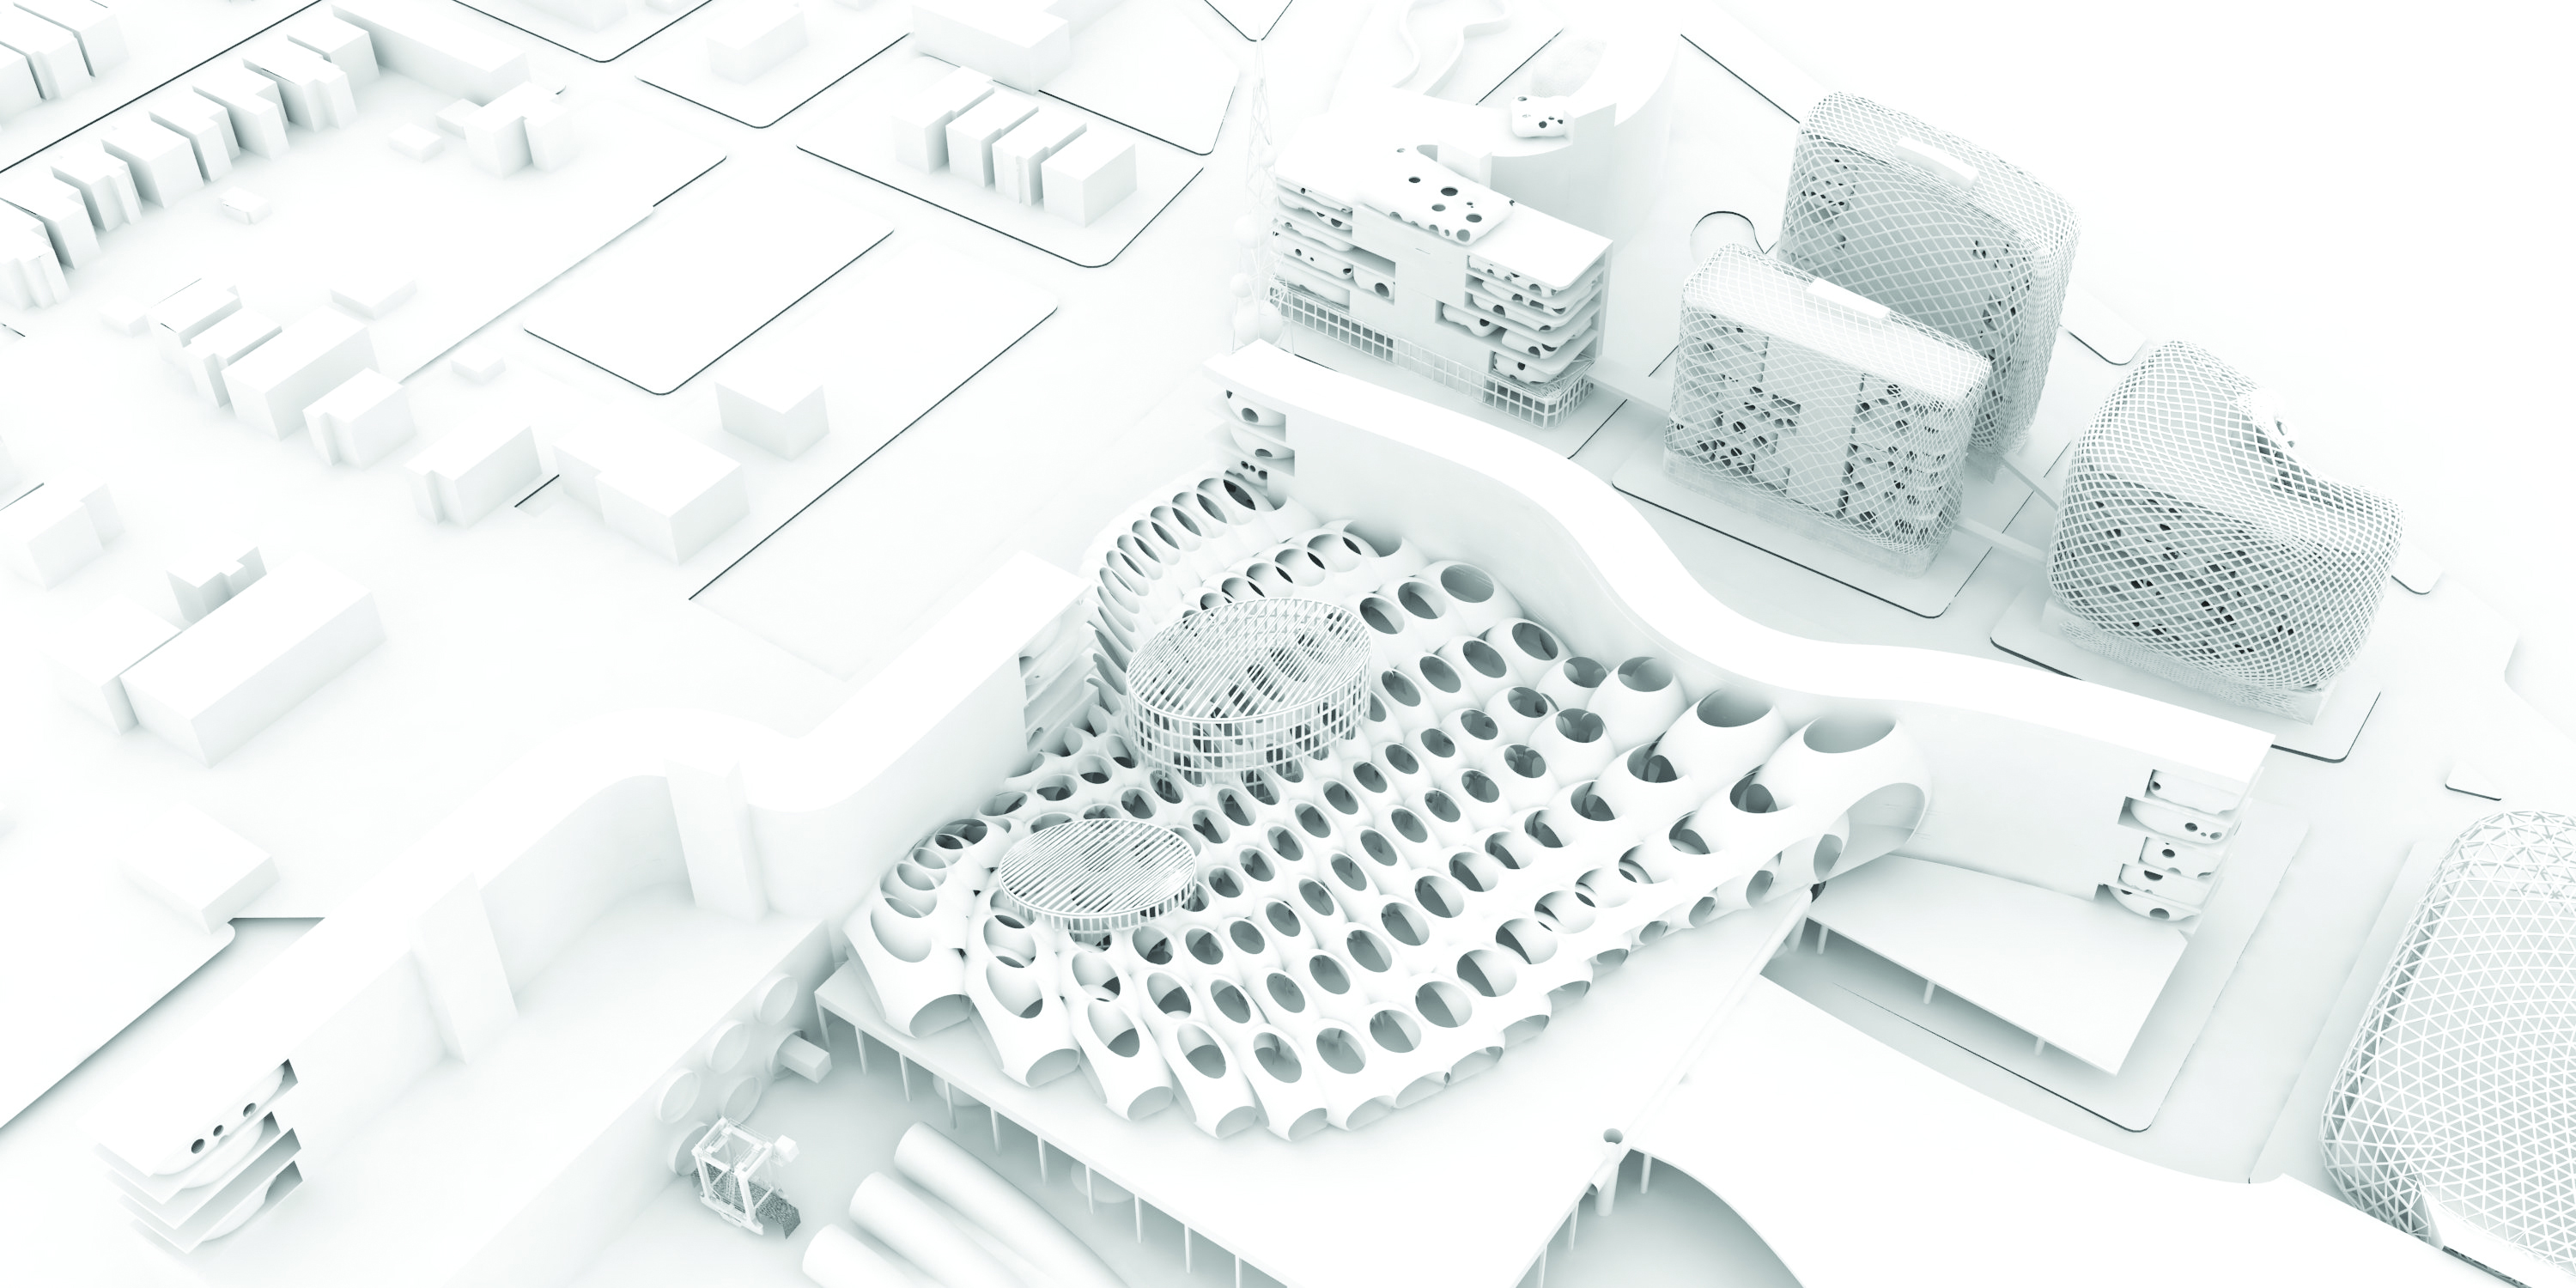 Rendered aerial perspective of industrial studios with pneumatic freight, housing, air-purification network, and a Canadian consulate. Speculative project for Mexicantown/Southwest Detroit seen in The Architectural Imagination, an exhibition for the United States Pavilion, Biennale Architettura 2016, Venice. Courtesy A(n) Office.